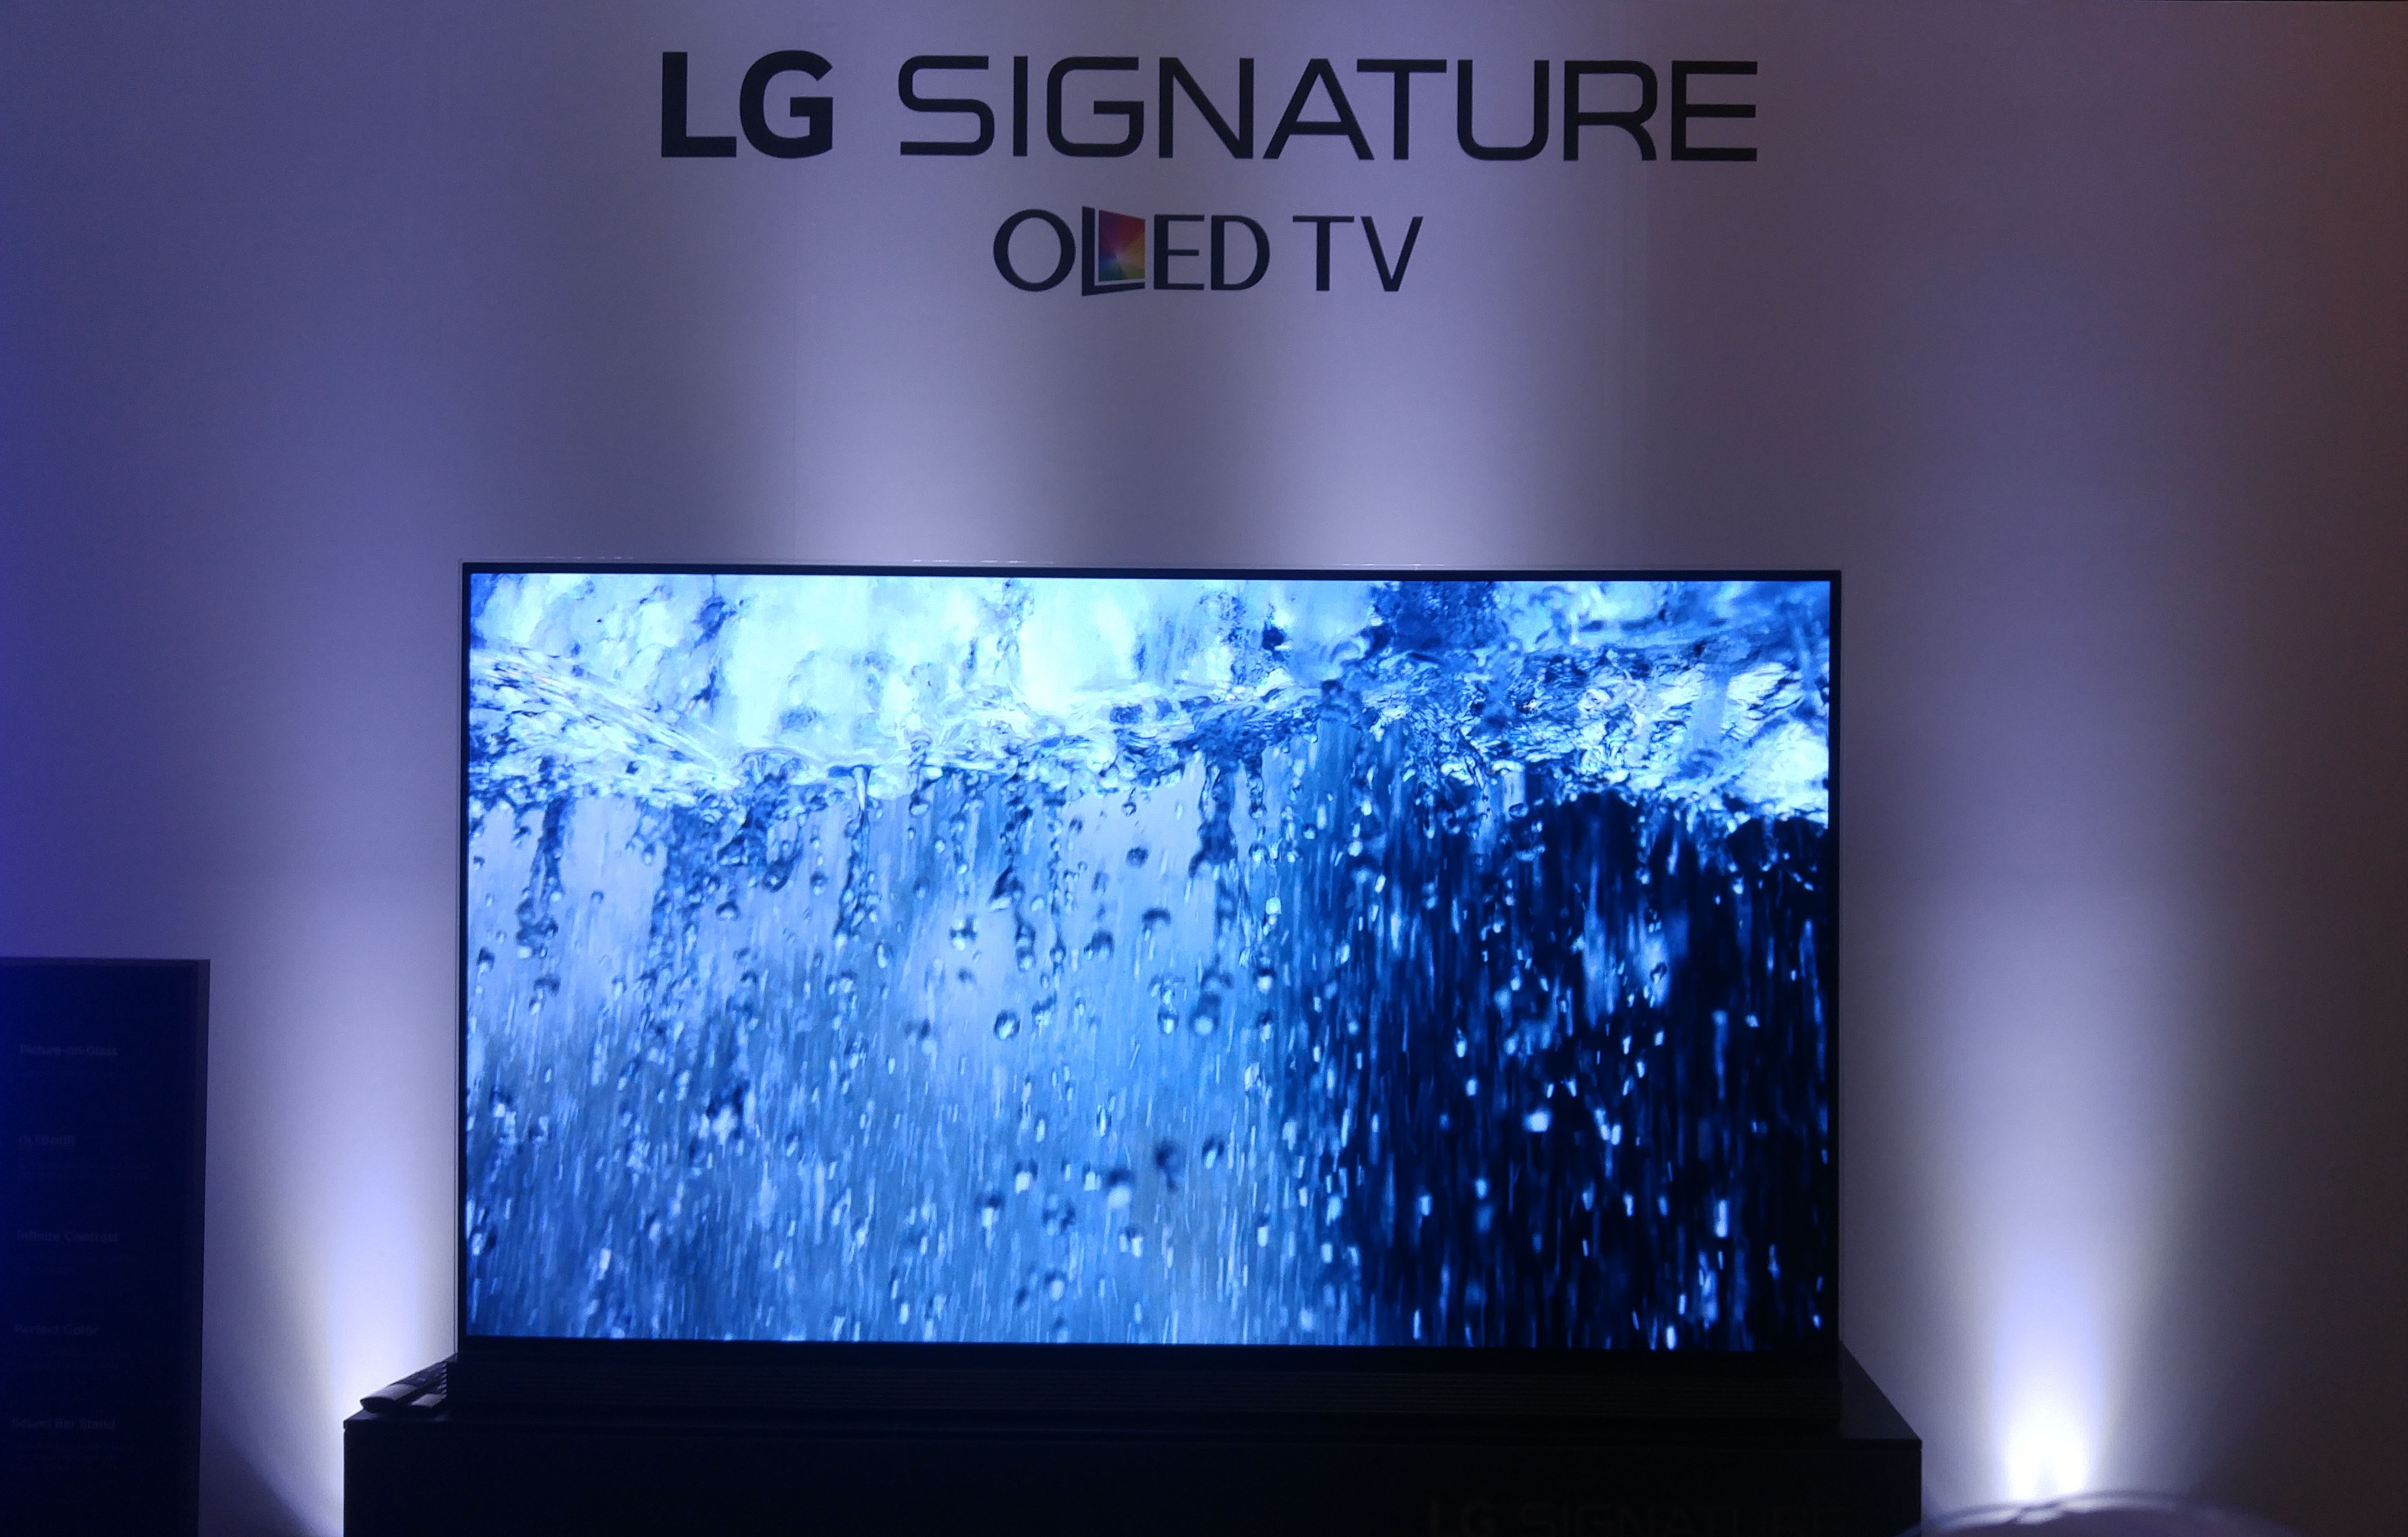 lg celebrates 5 years of lg oled tv excellence with the launch of 77 inch lg signature oled tv. Black Bedroom Furniture Sets. Home Design Ideas